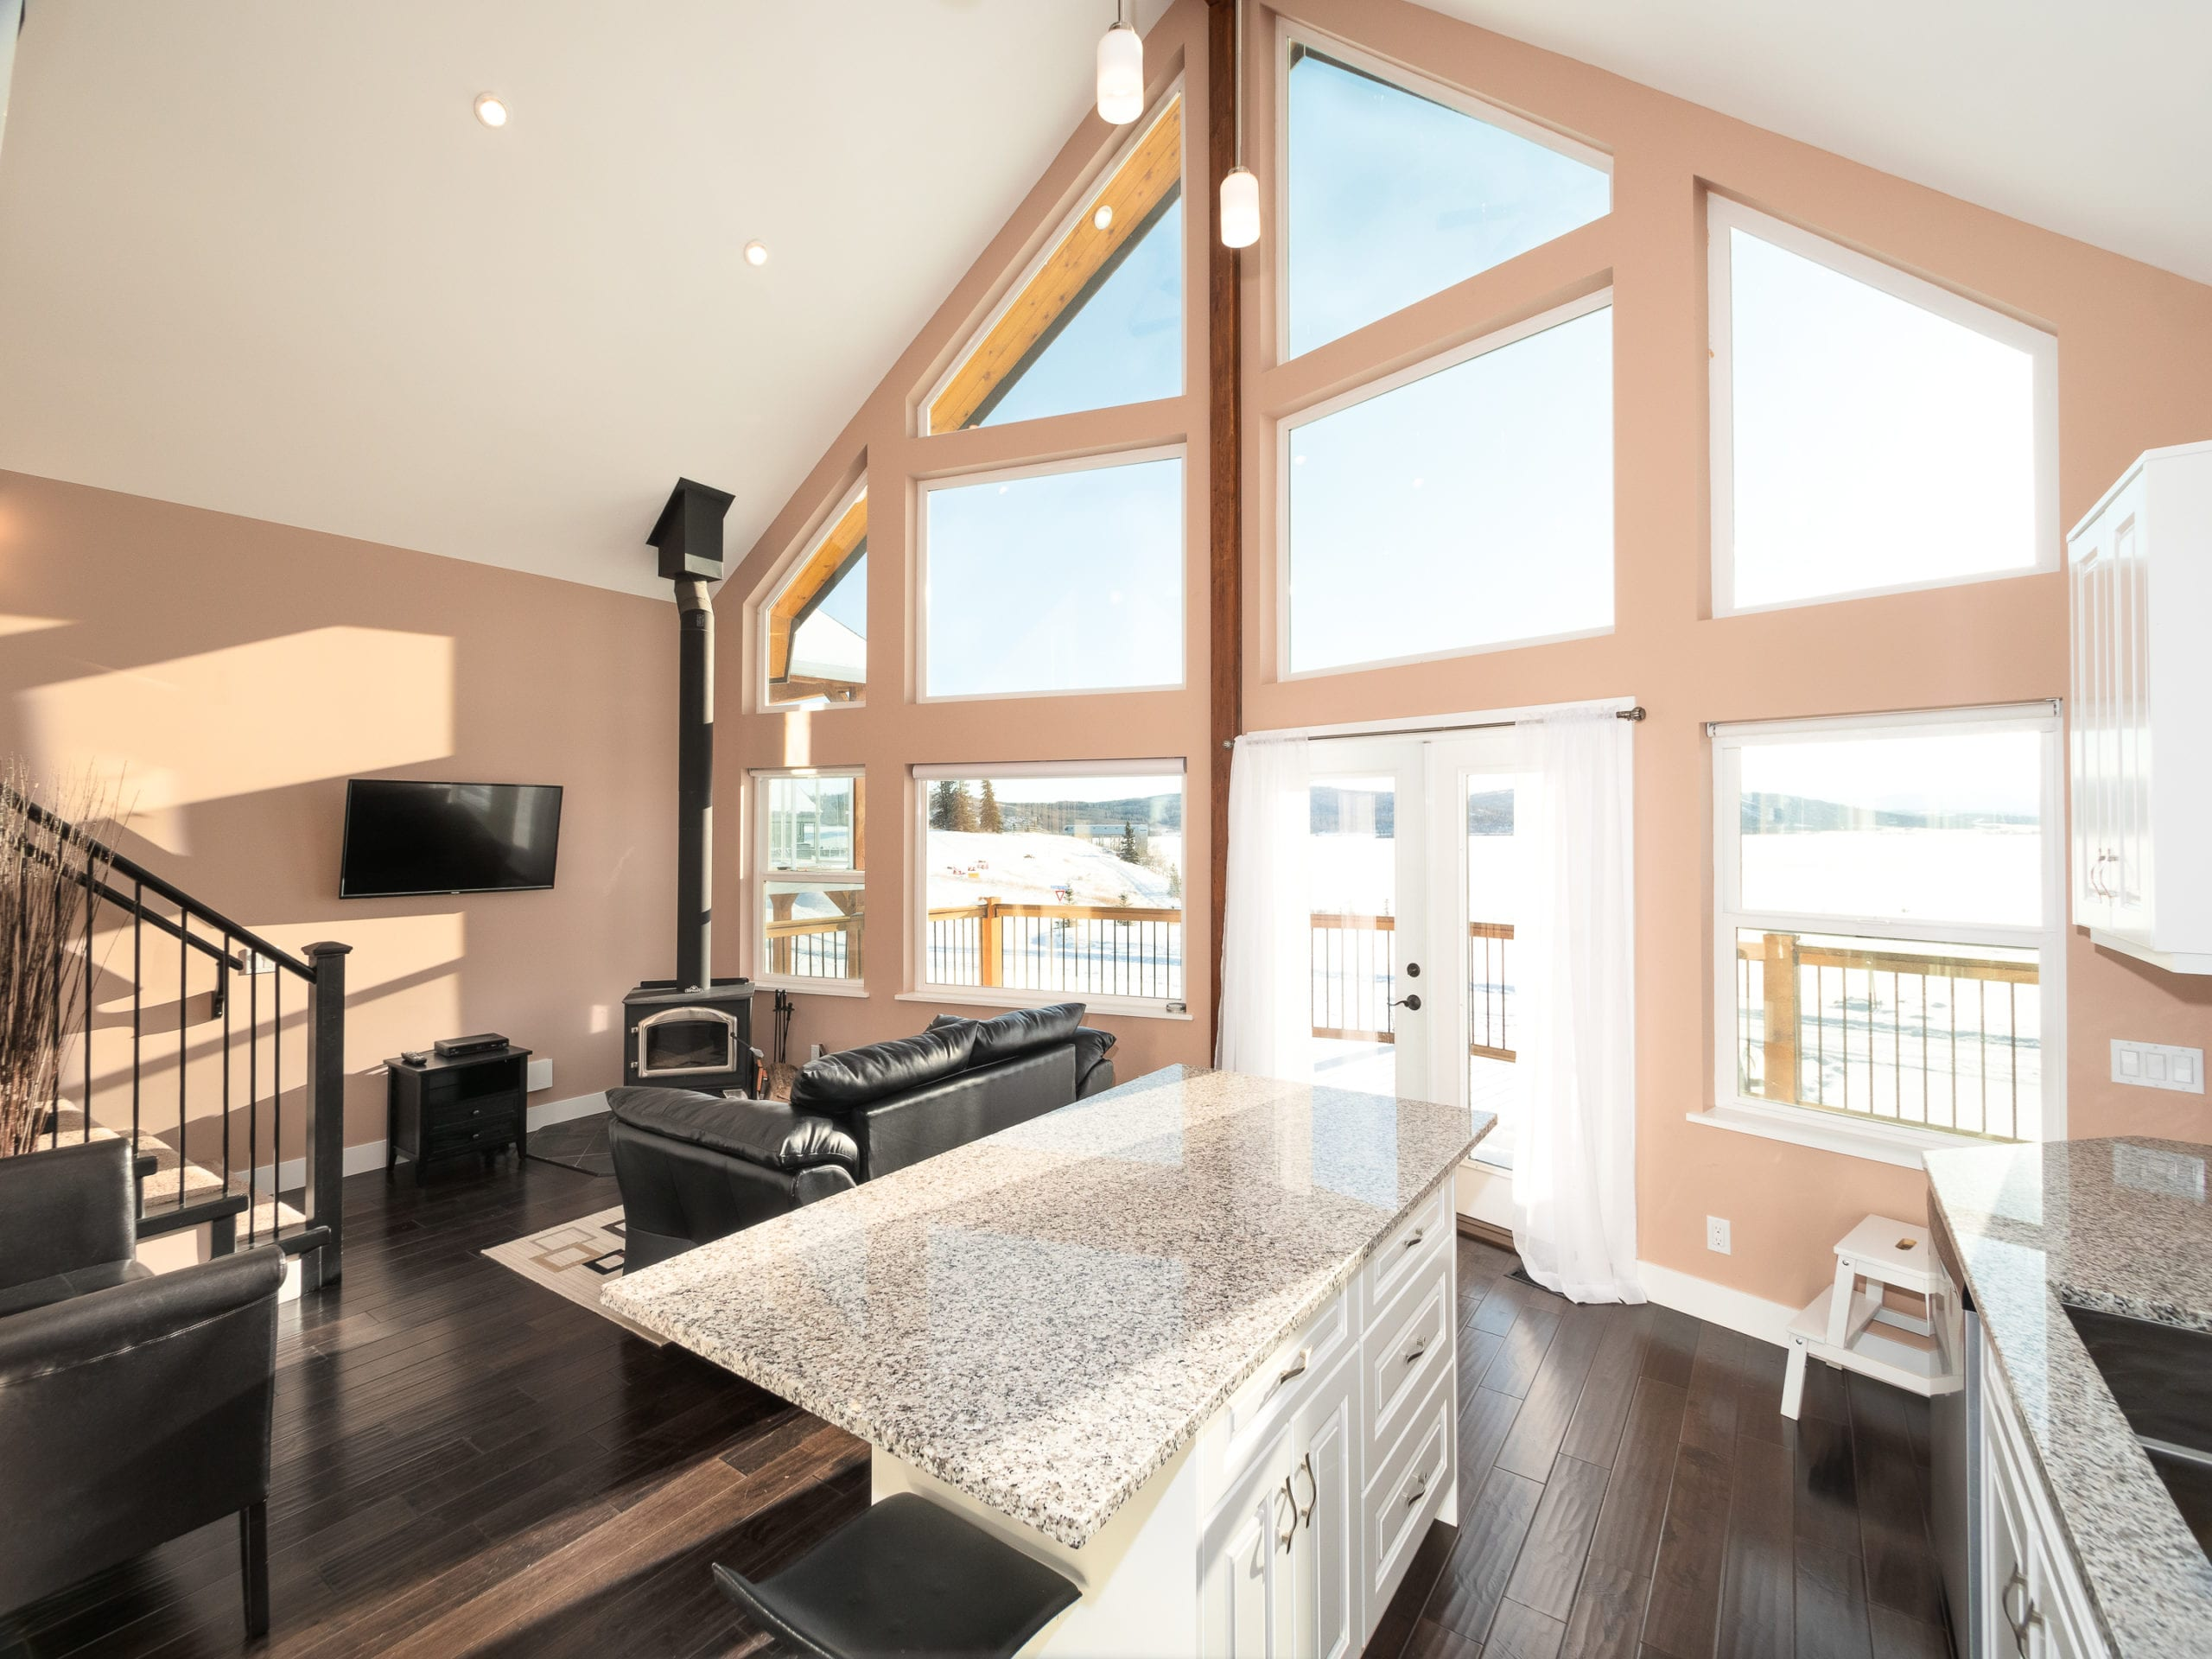 Hello Gorgeous - 456 Cottageclub Cove, Rocky View No. 44, AB - Tara Molina Real Estate (4 of 41)